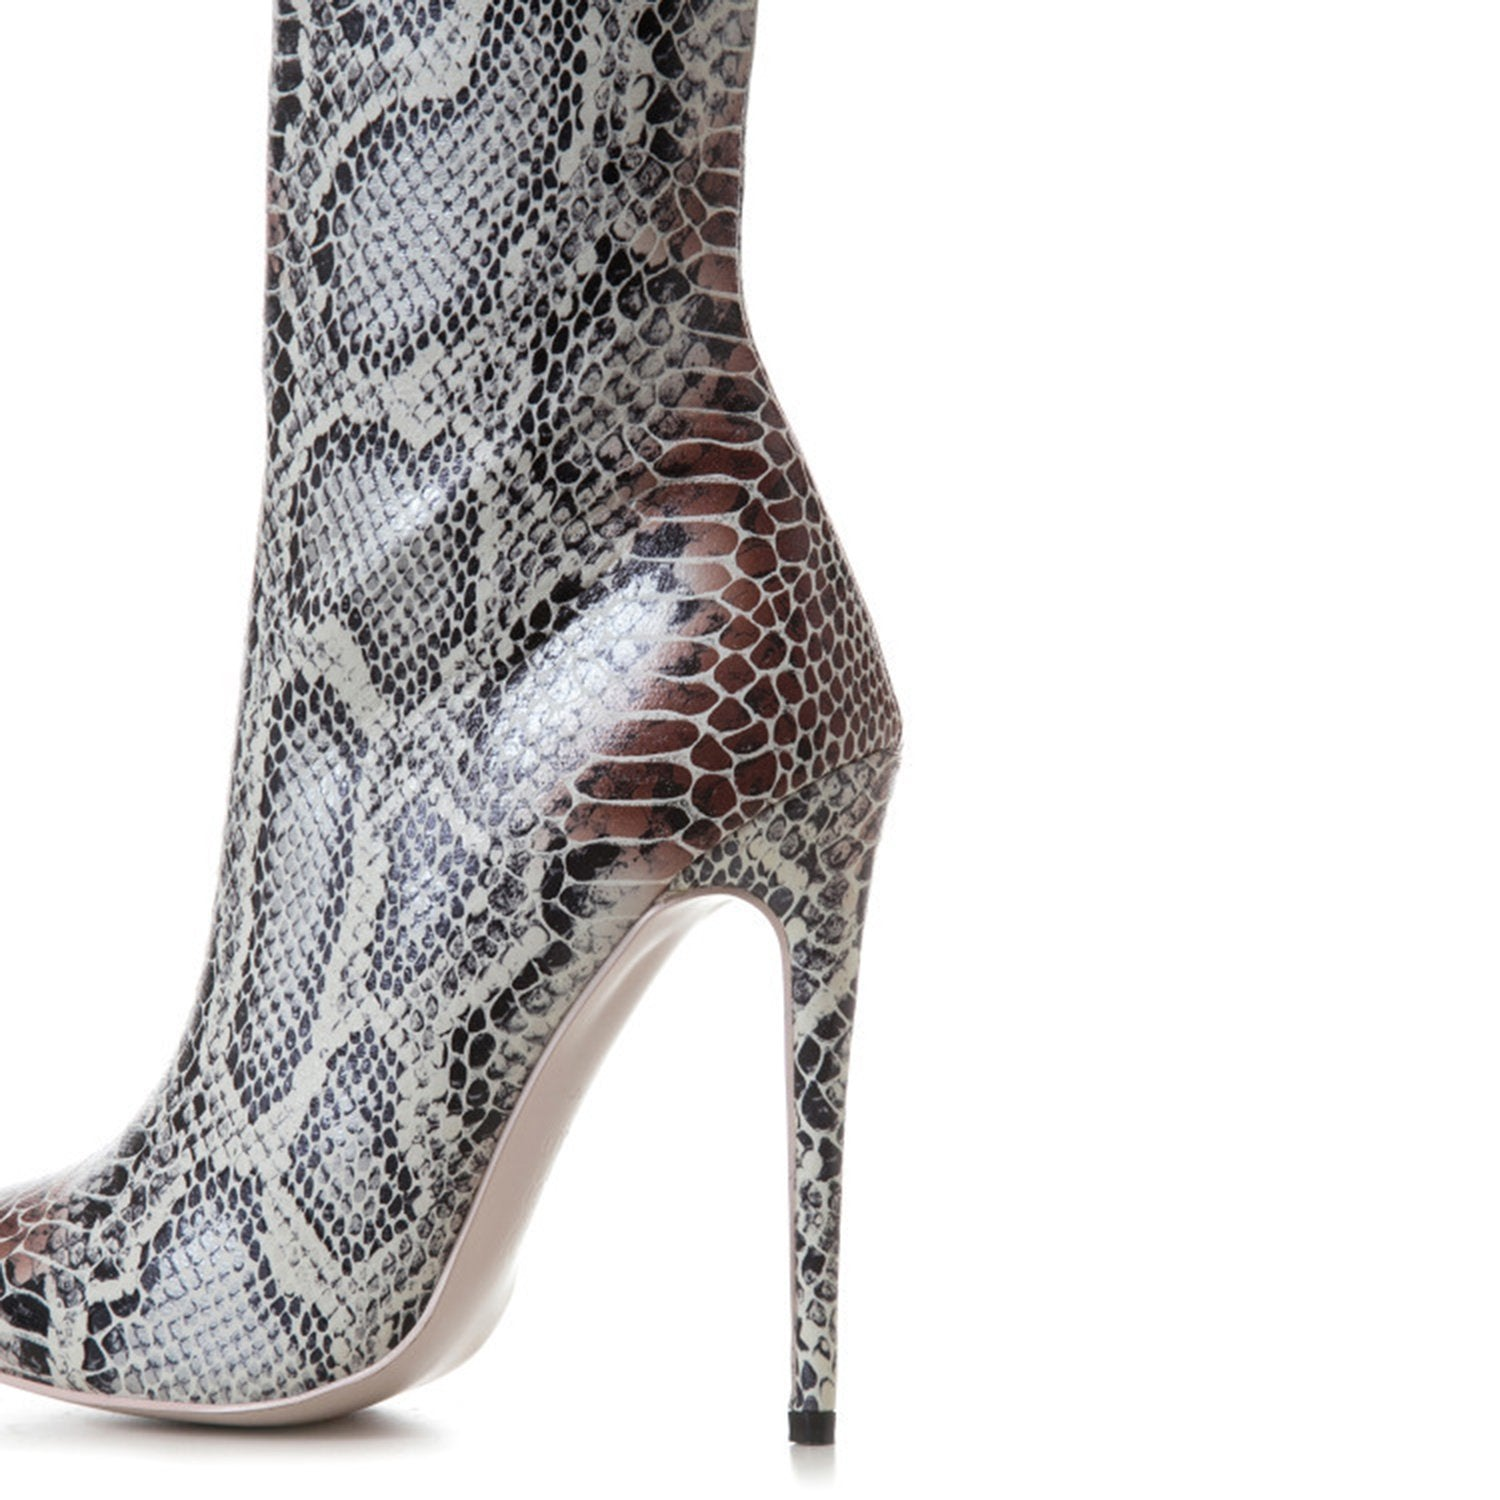 Pointy Toe Snakeskin Stiletto High Heel Boots